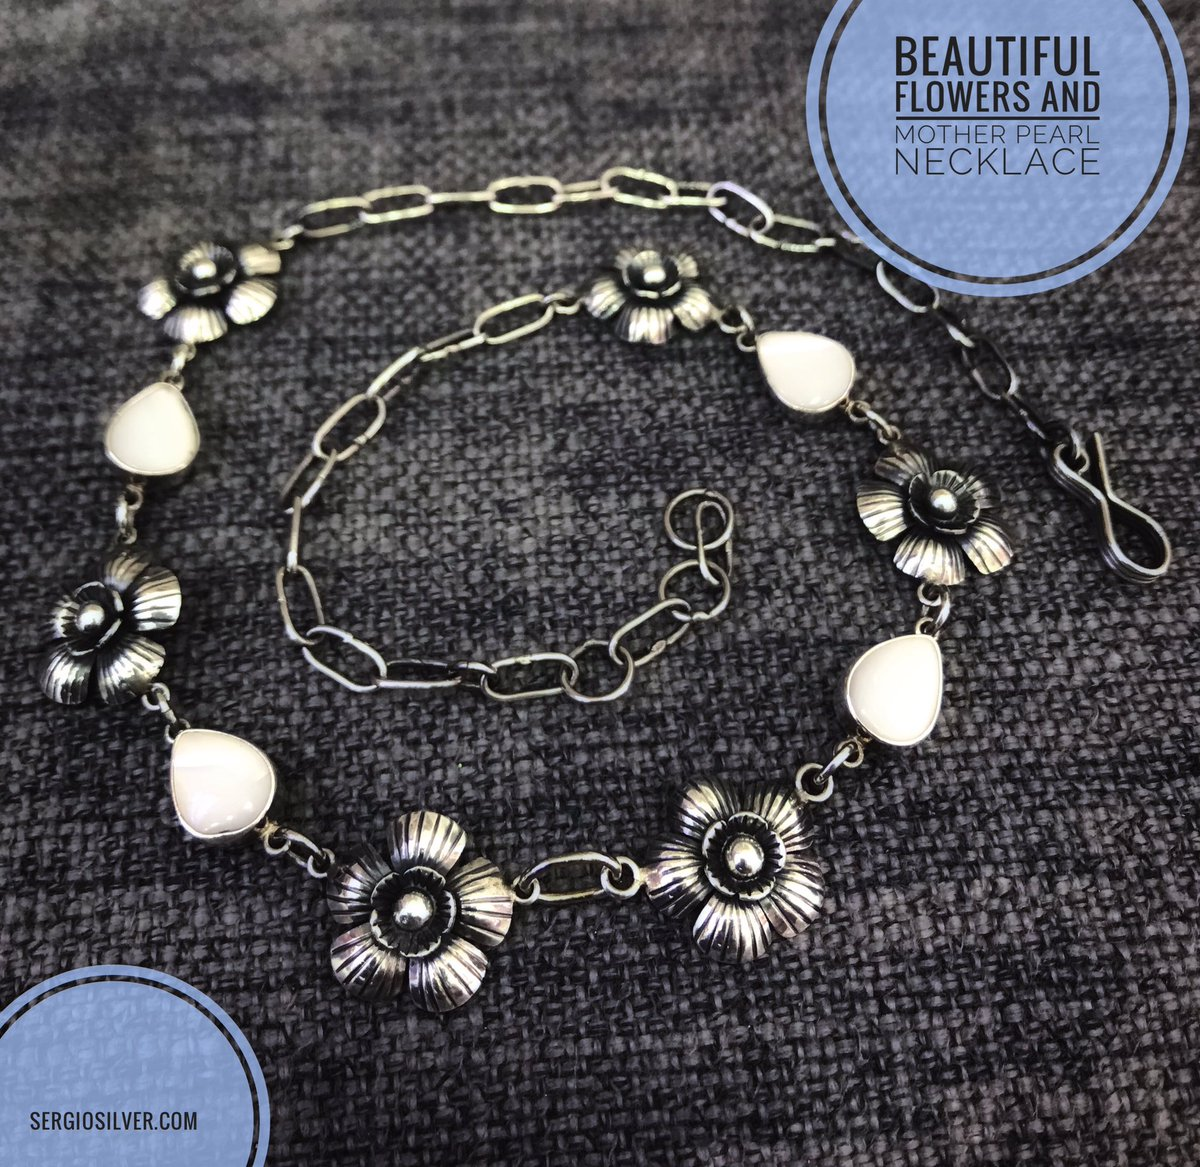 Beautiful flowers design and mother pearl oxidized silver necklace #sergiosilvercoz #cozumel #shop #shopping #silverjewelry #taxcojewelry #flowerjewelry #silver #flower #flowers #womenfashion #fashion #women #eshop #shoponline #onlineshop #onlineshopping #necklace #motherofpearl